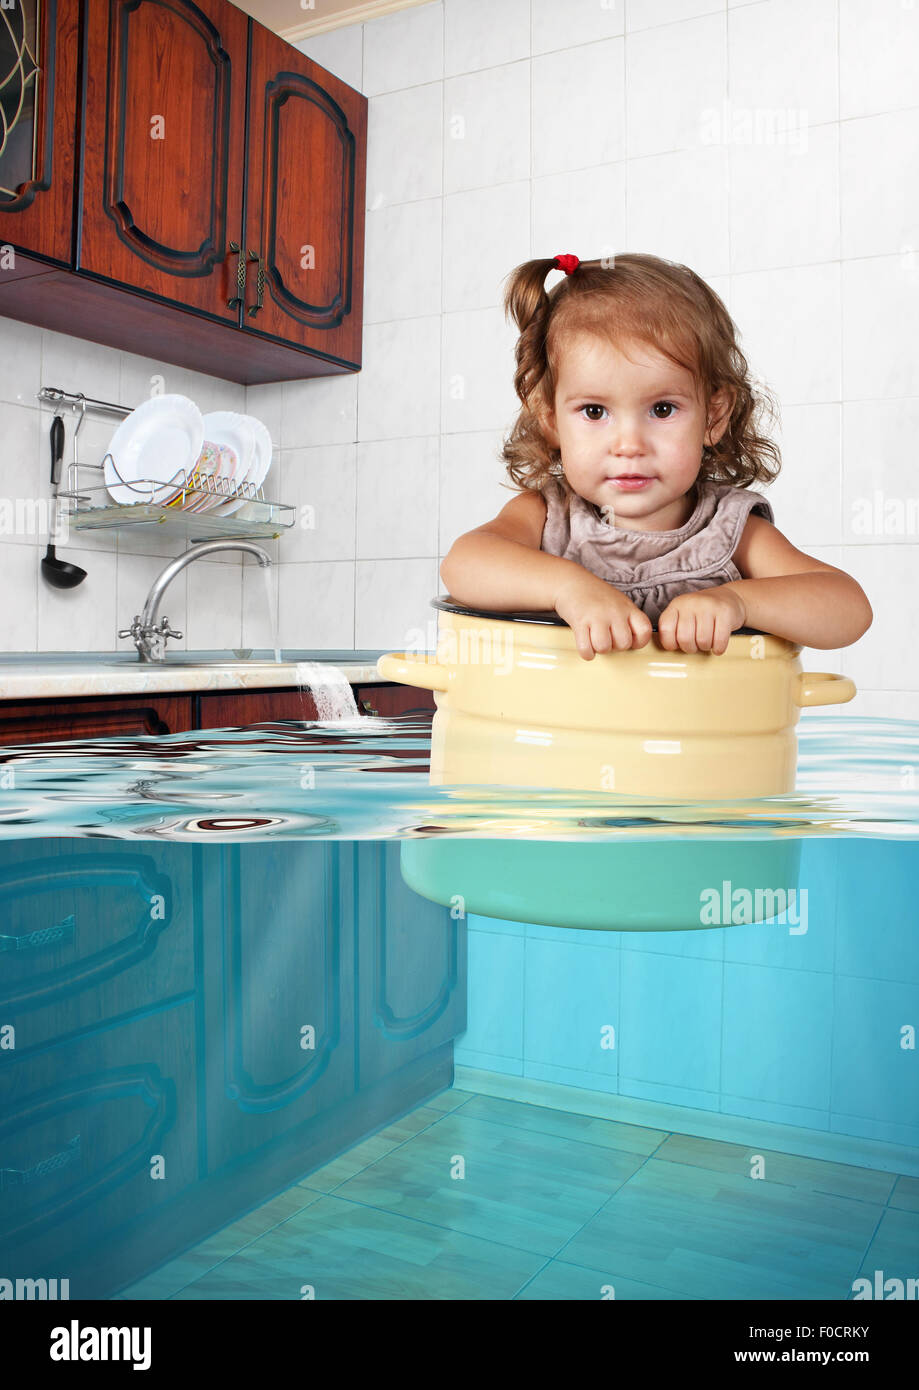 Funny little child swim in pan in the flooded kitchen, mess creative concept - Stock Image